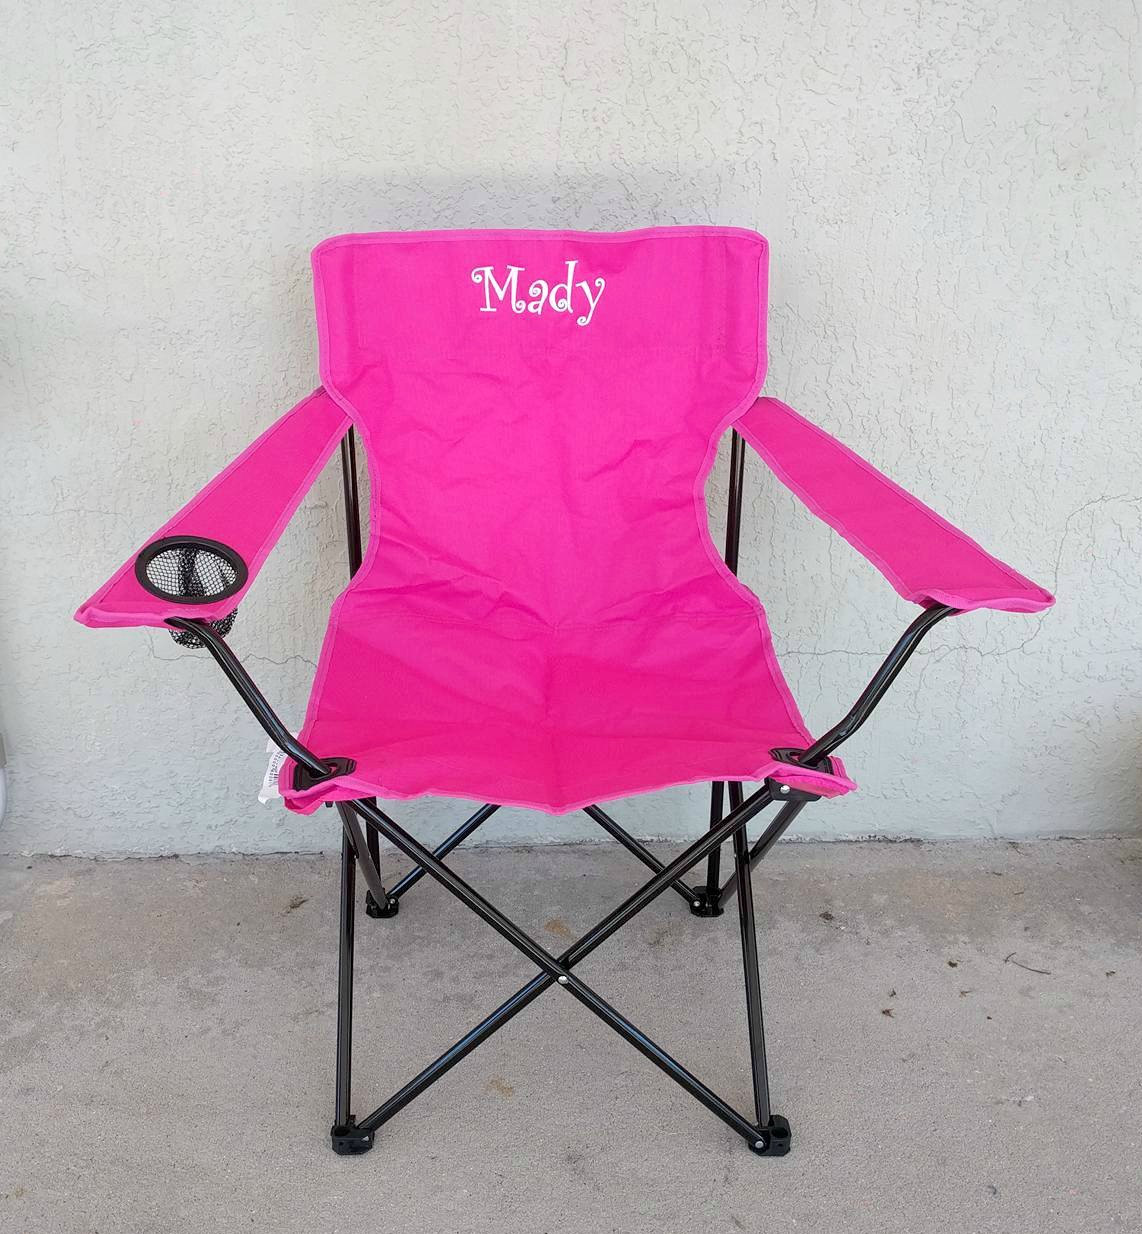 personalized folding chair antique dining table and chairs christmas gift monogrammed adult etsy image 0